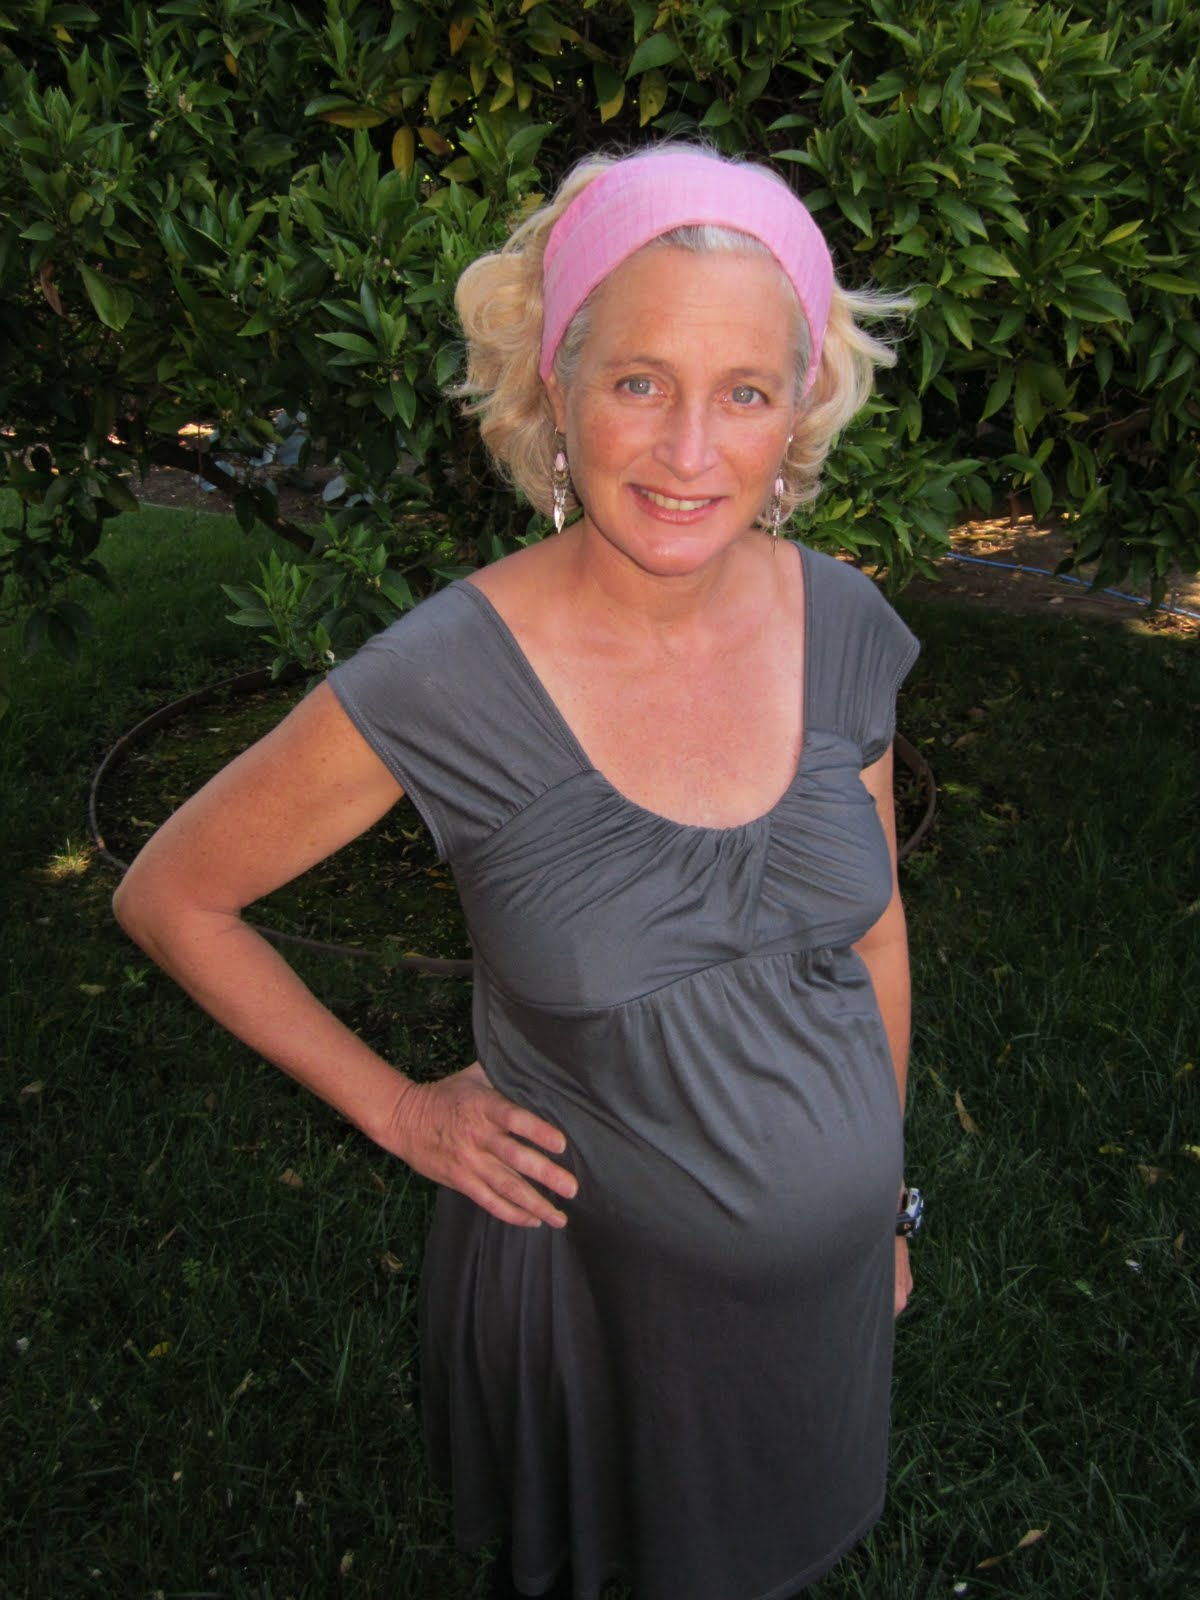 Me Pregnant - Videos Of Naked Moms-7670